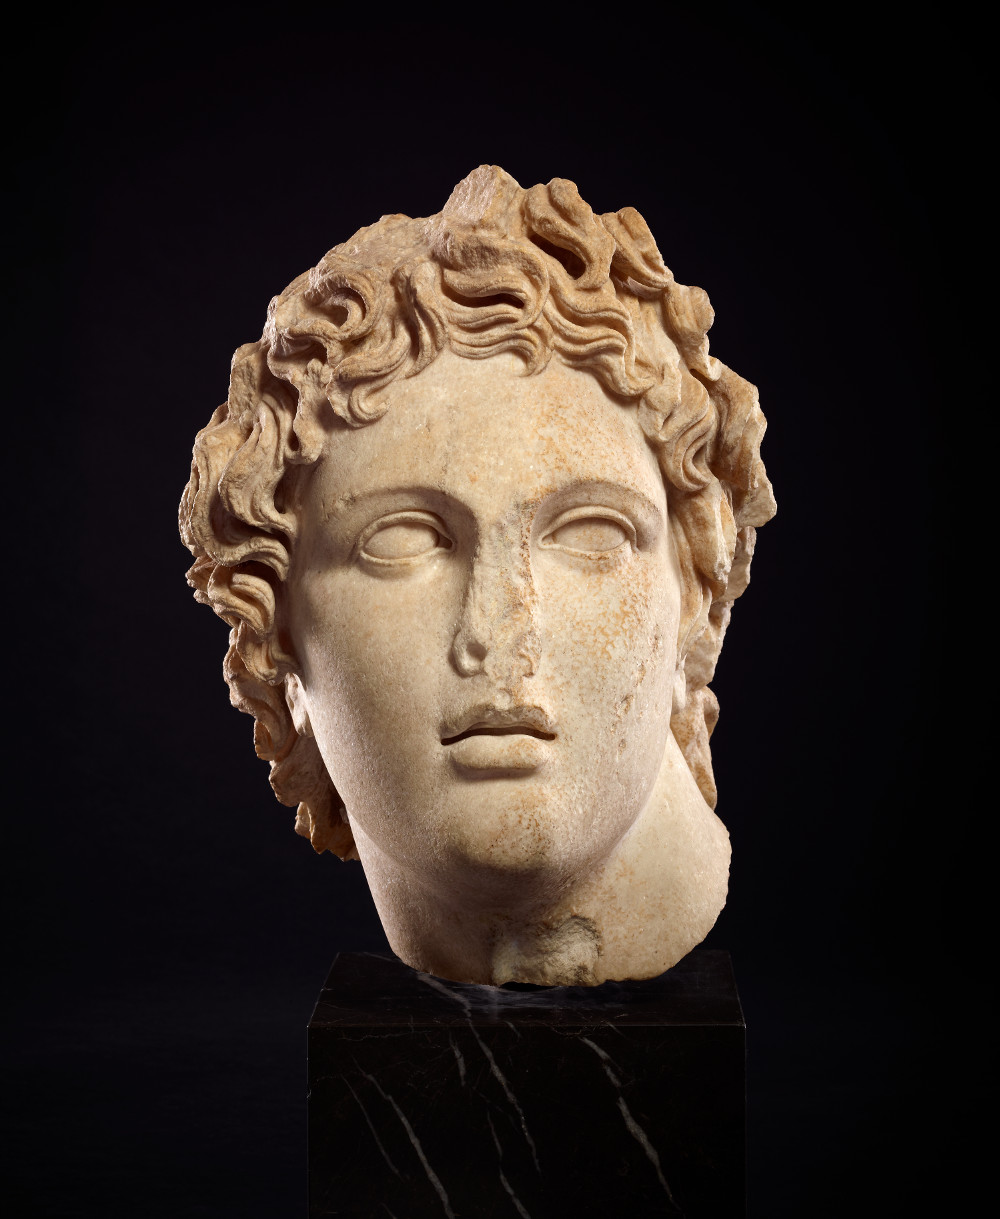 Head in the style of Alexander  - MarbleAD 100–200Roman (probably a copy of Greek work of about 330–300 BC)British MuseumAlexander the Great (reigned 336–323 BC) ruled from Egypt to the Indus. He was adept at using his own image as a tool of political propaganda. He commissioned heroic portraits designed to project his character and virtues. This vision of the ruler-hero was copied by later rulers, including several Roman emperors. Their characteristics may be recognised in this idealised head with its lion's mane-like hair, clean-shaven face, full lips and tilted neck.